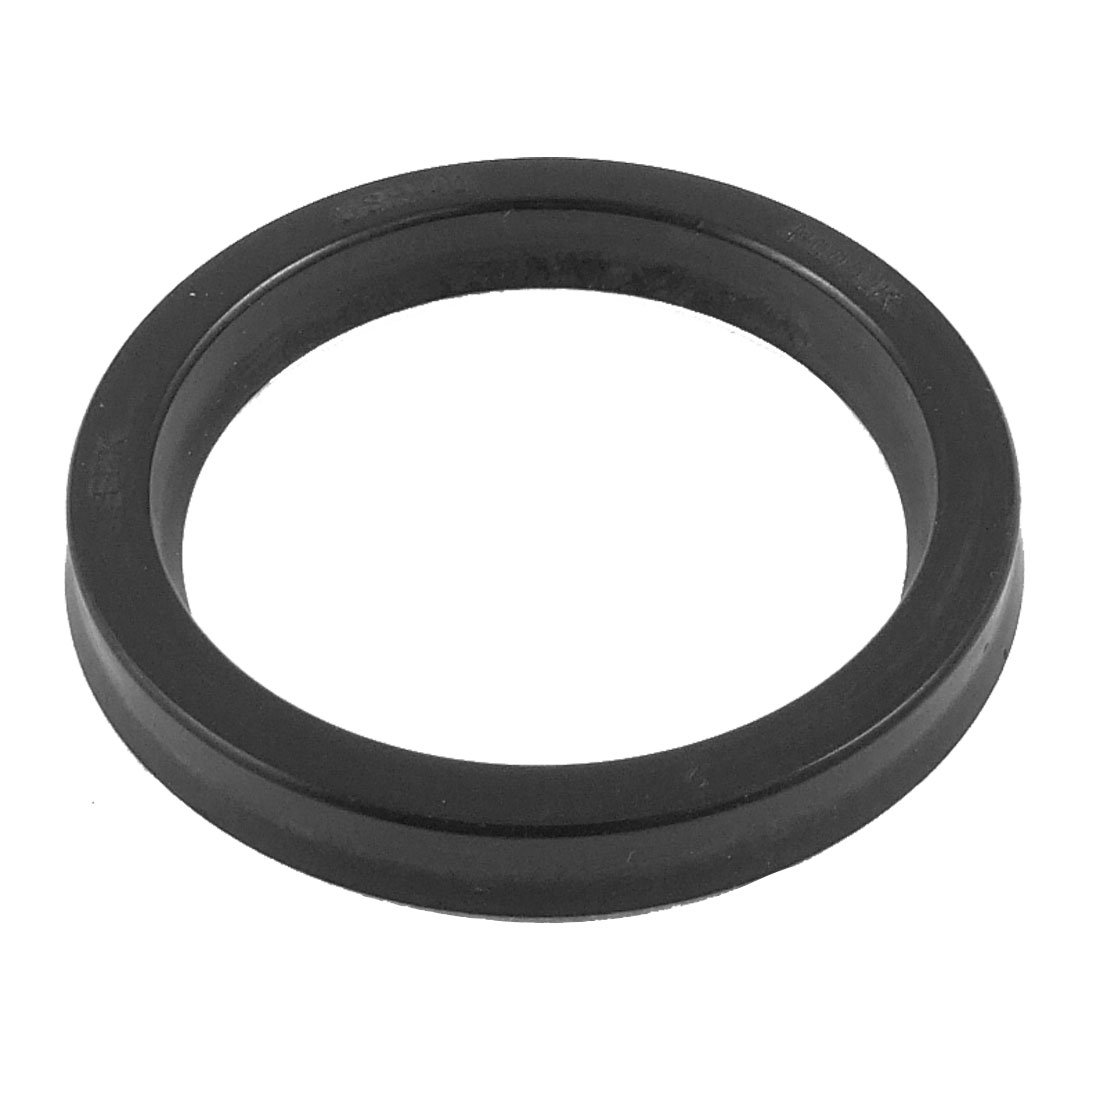 USH 40mm x 50mm x 6mm Hydraulic Cylinder Rubber Oil Seal Ring